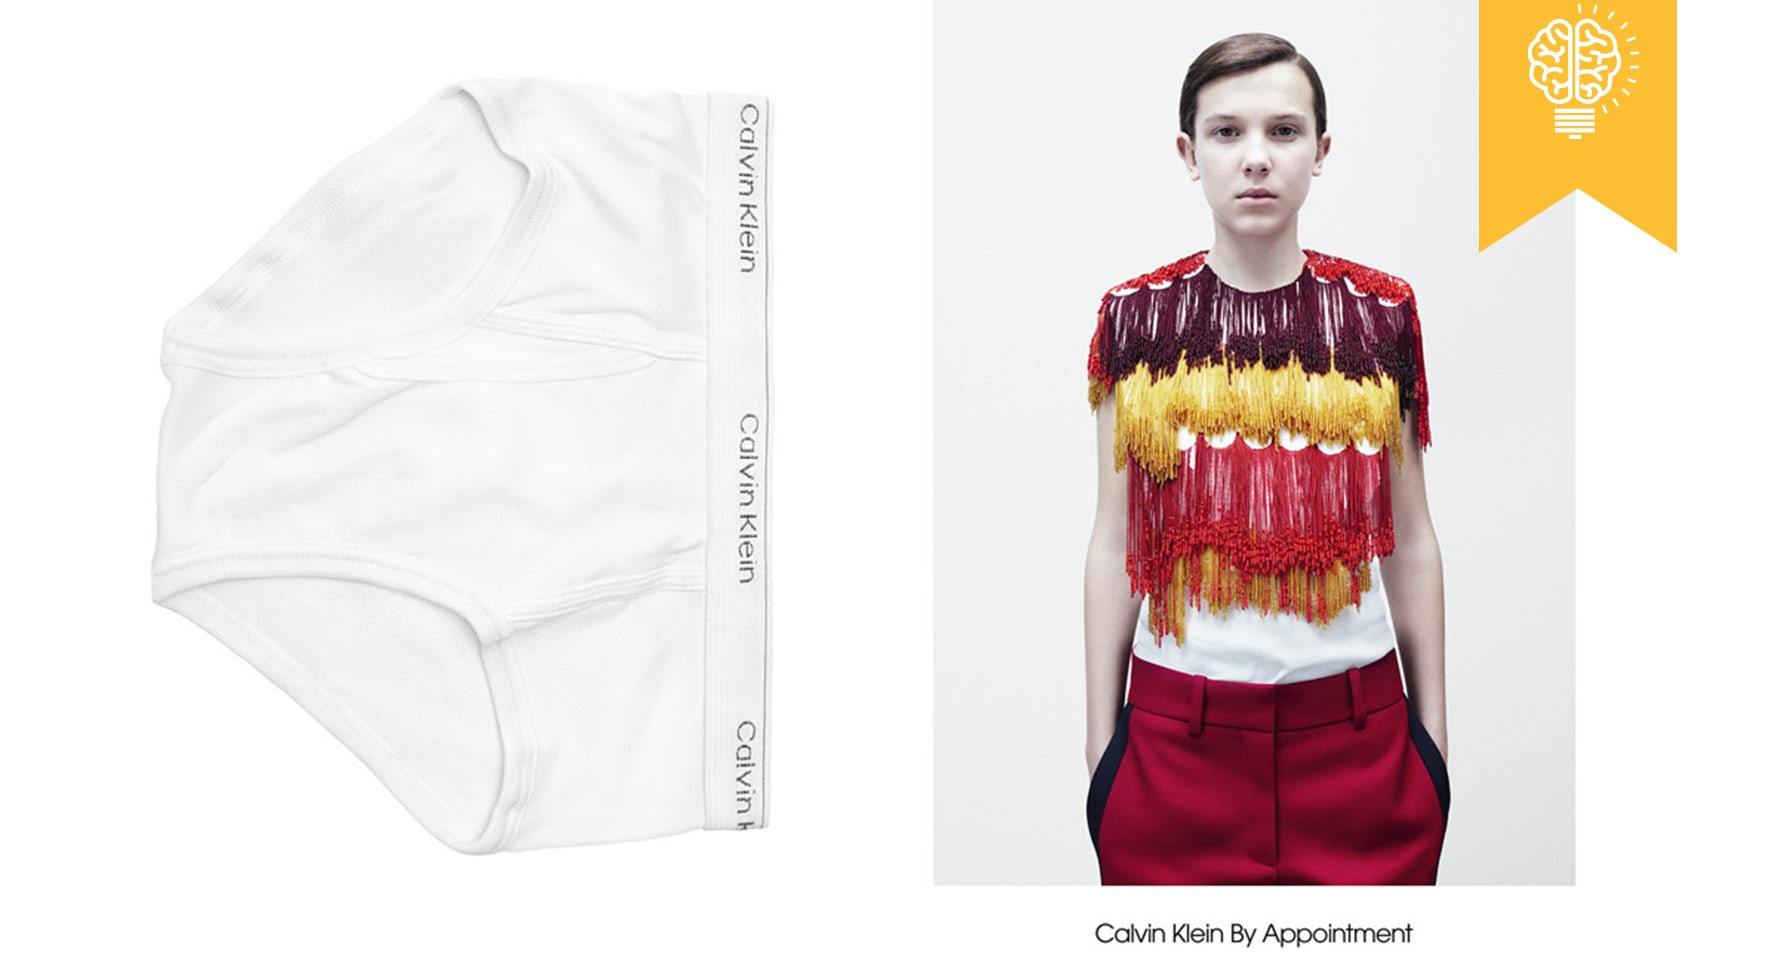 Actress Millie Bobby Brown stars in the Calvin Klein by Appointment campaign